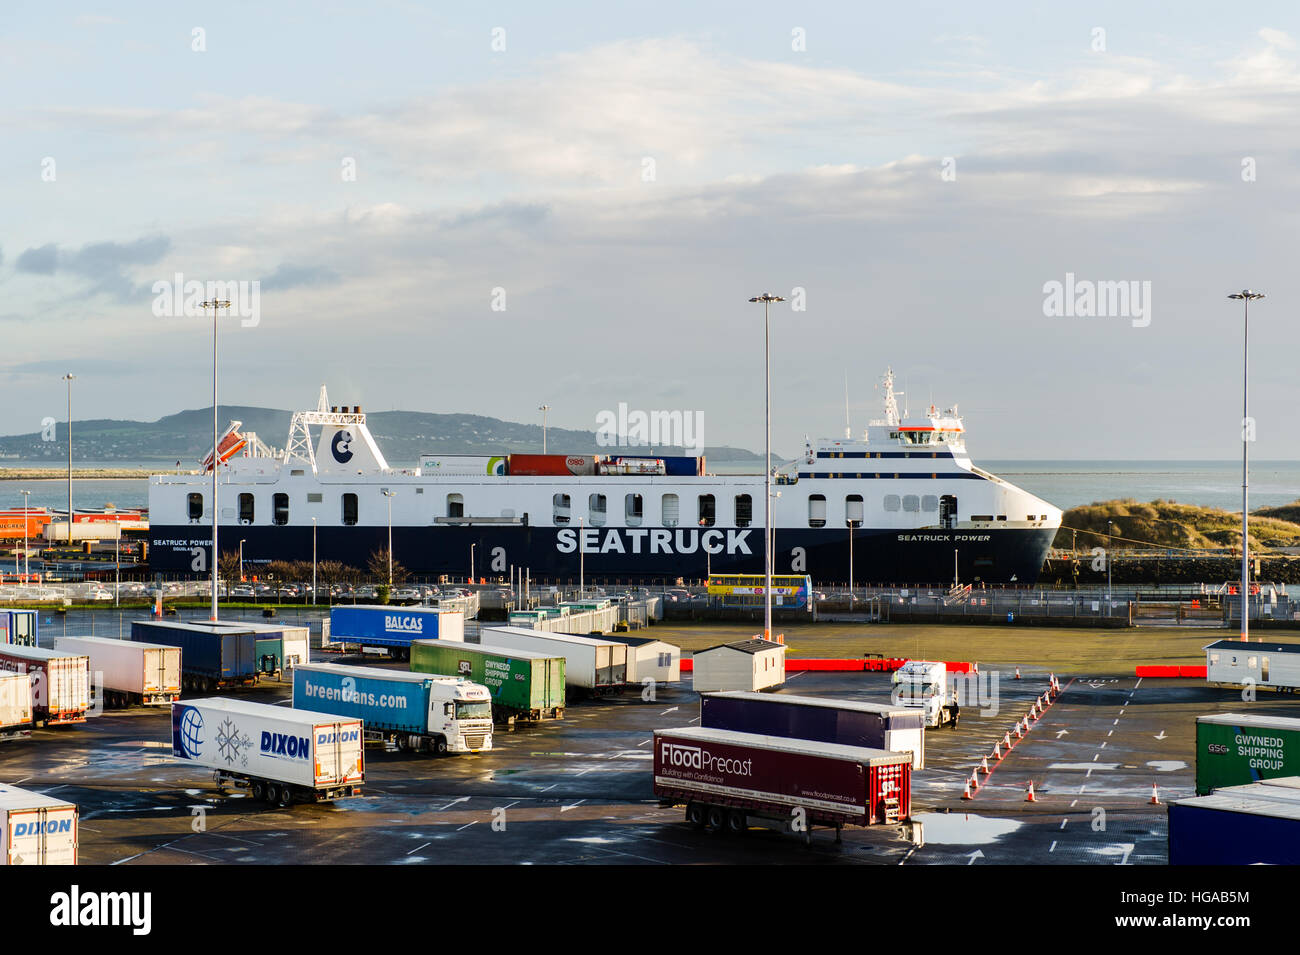 seatruck-roll-on-roll-off-ferry-seatruck